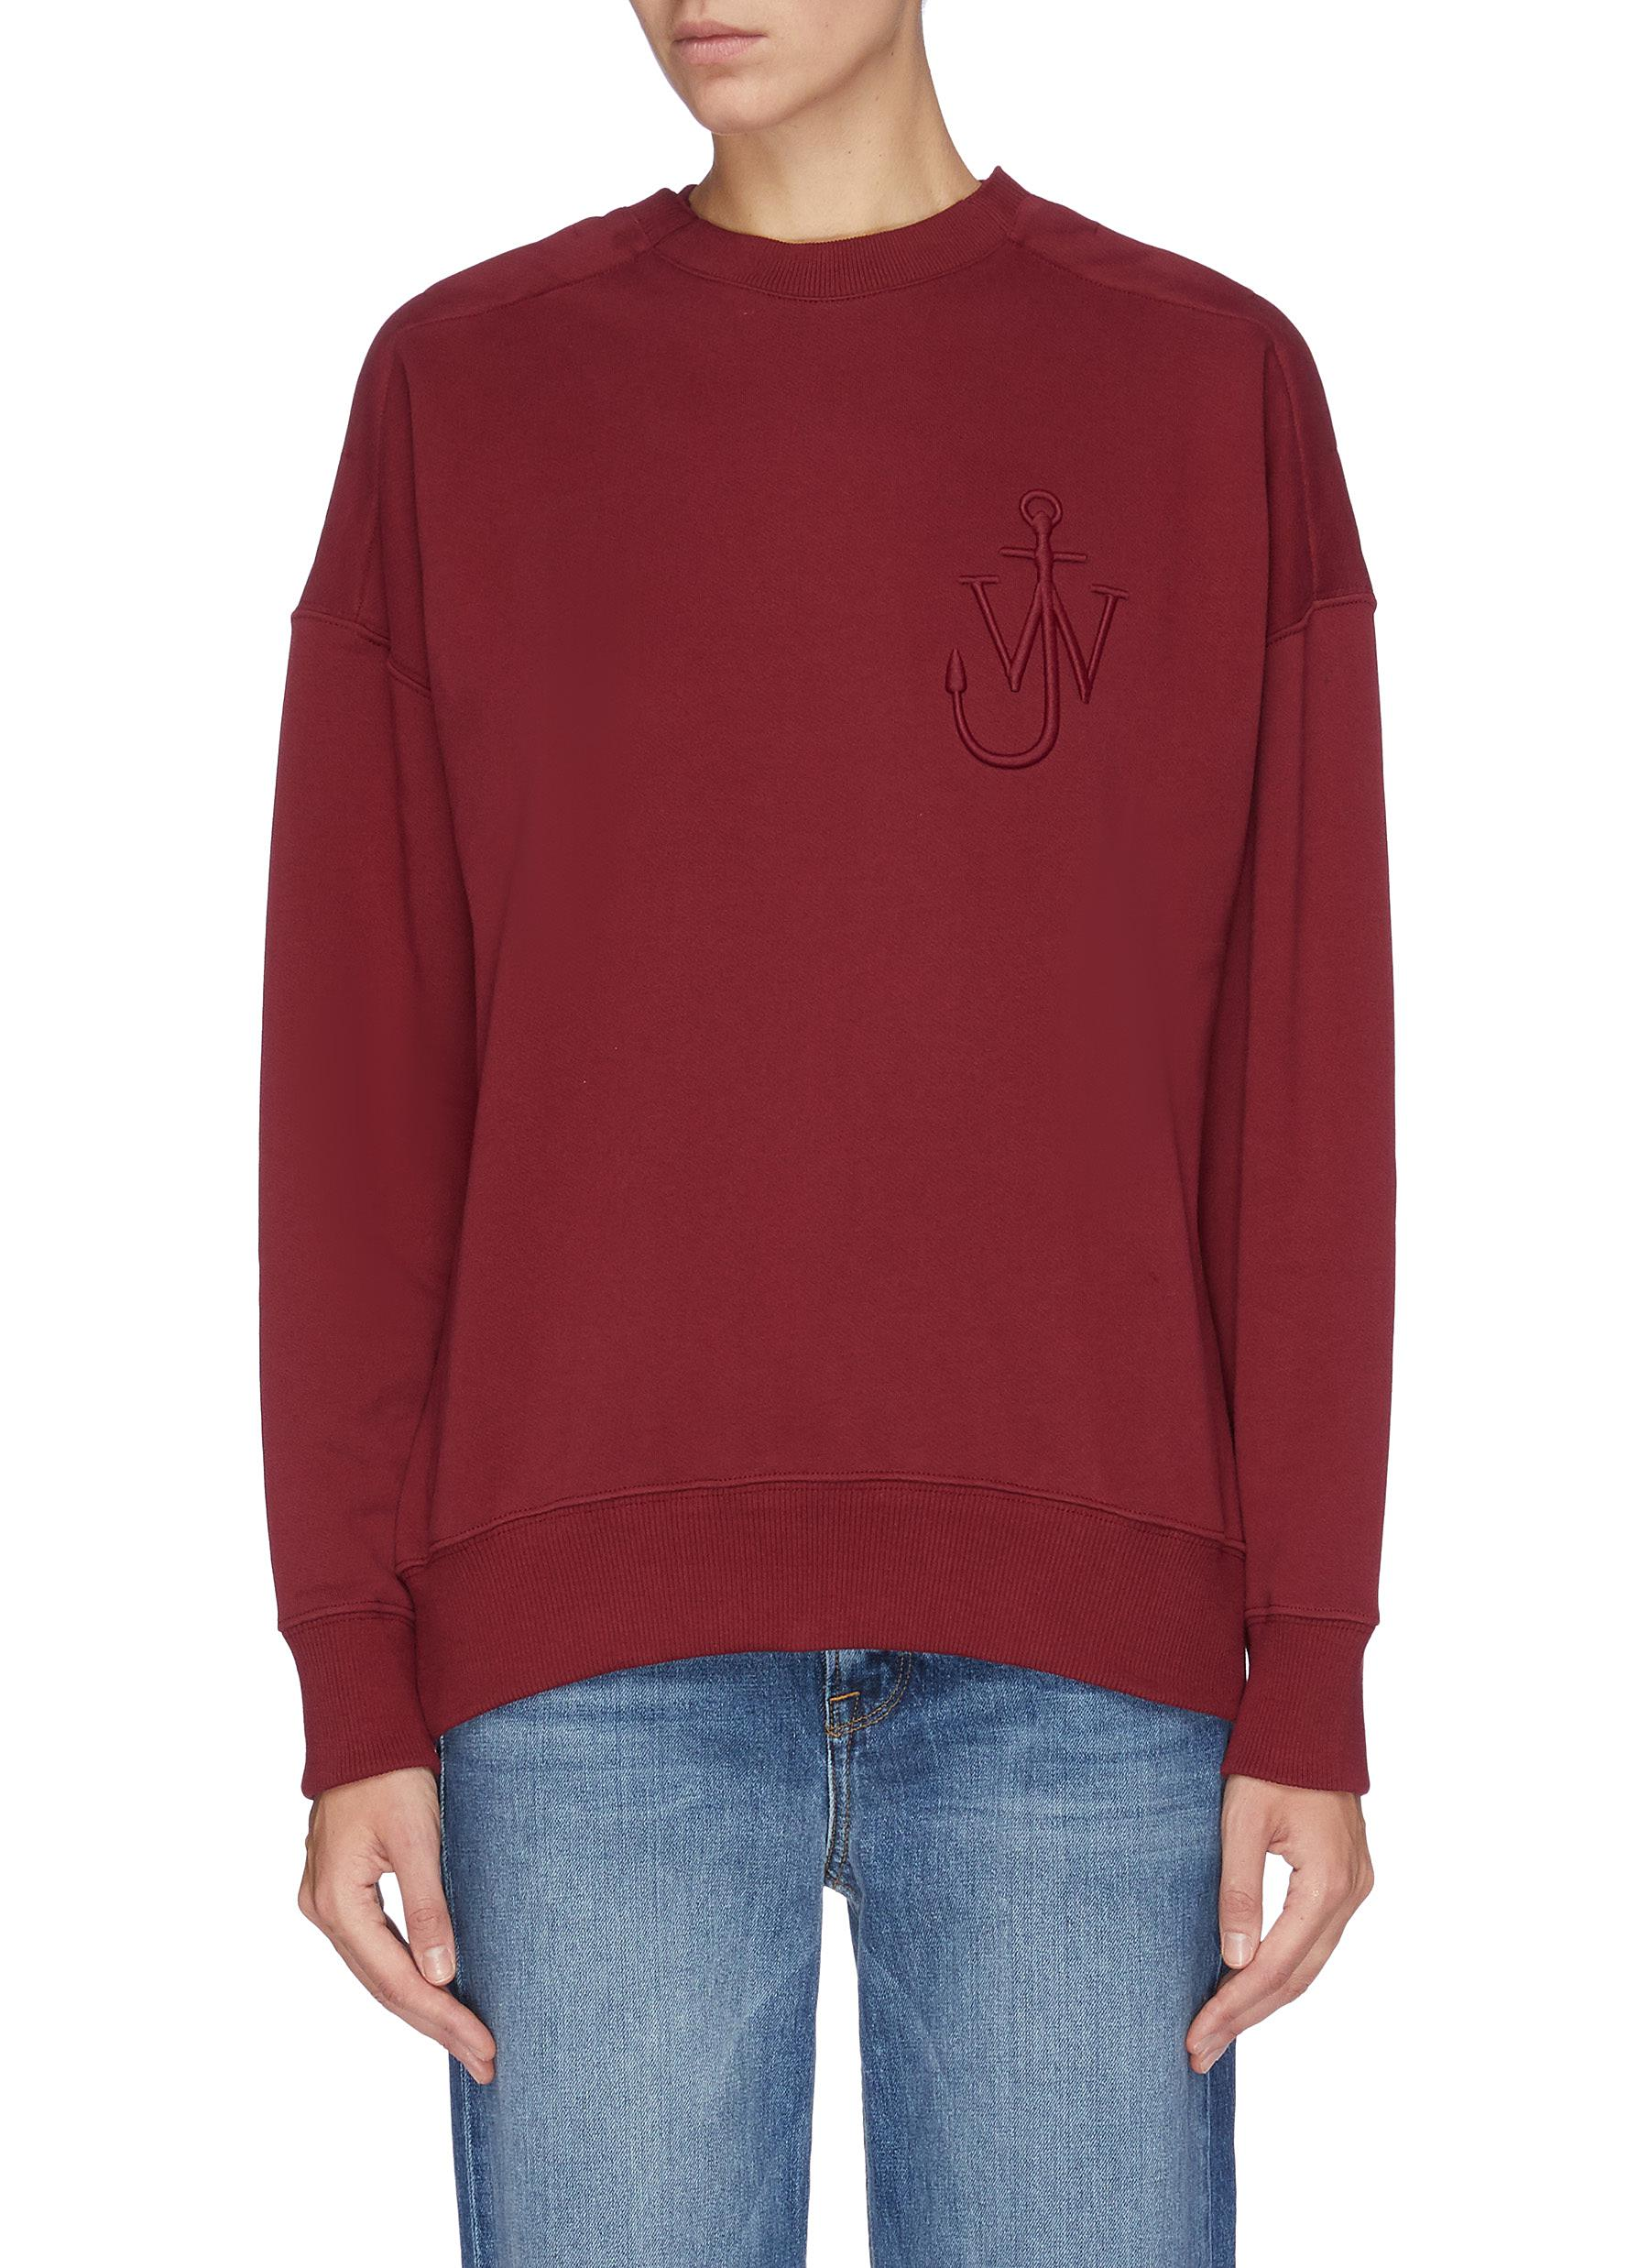 Button shoulder logo embroidered sweatshirt by Jw Anderson